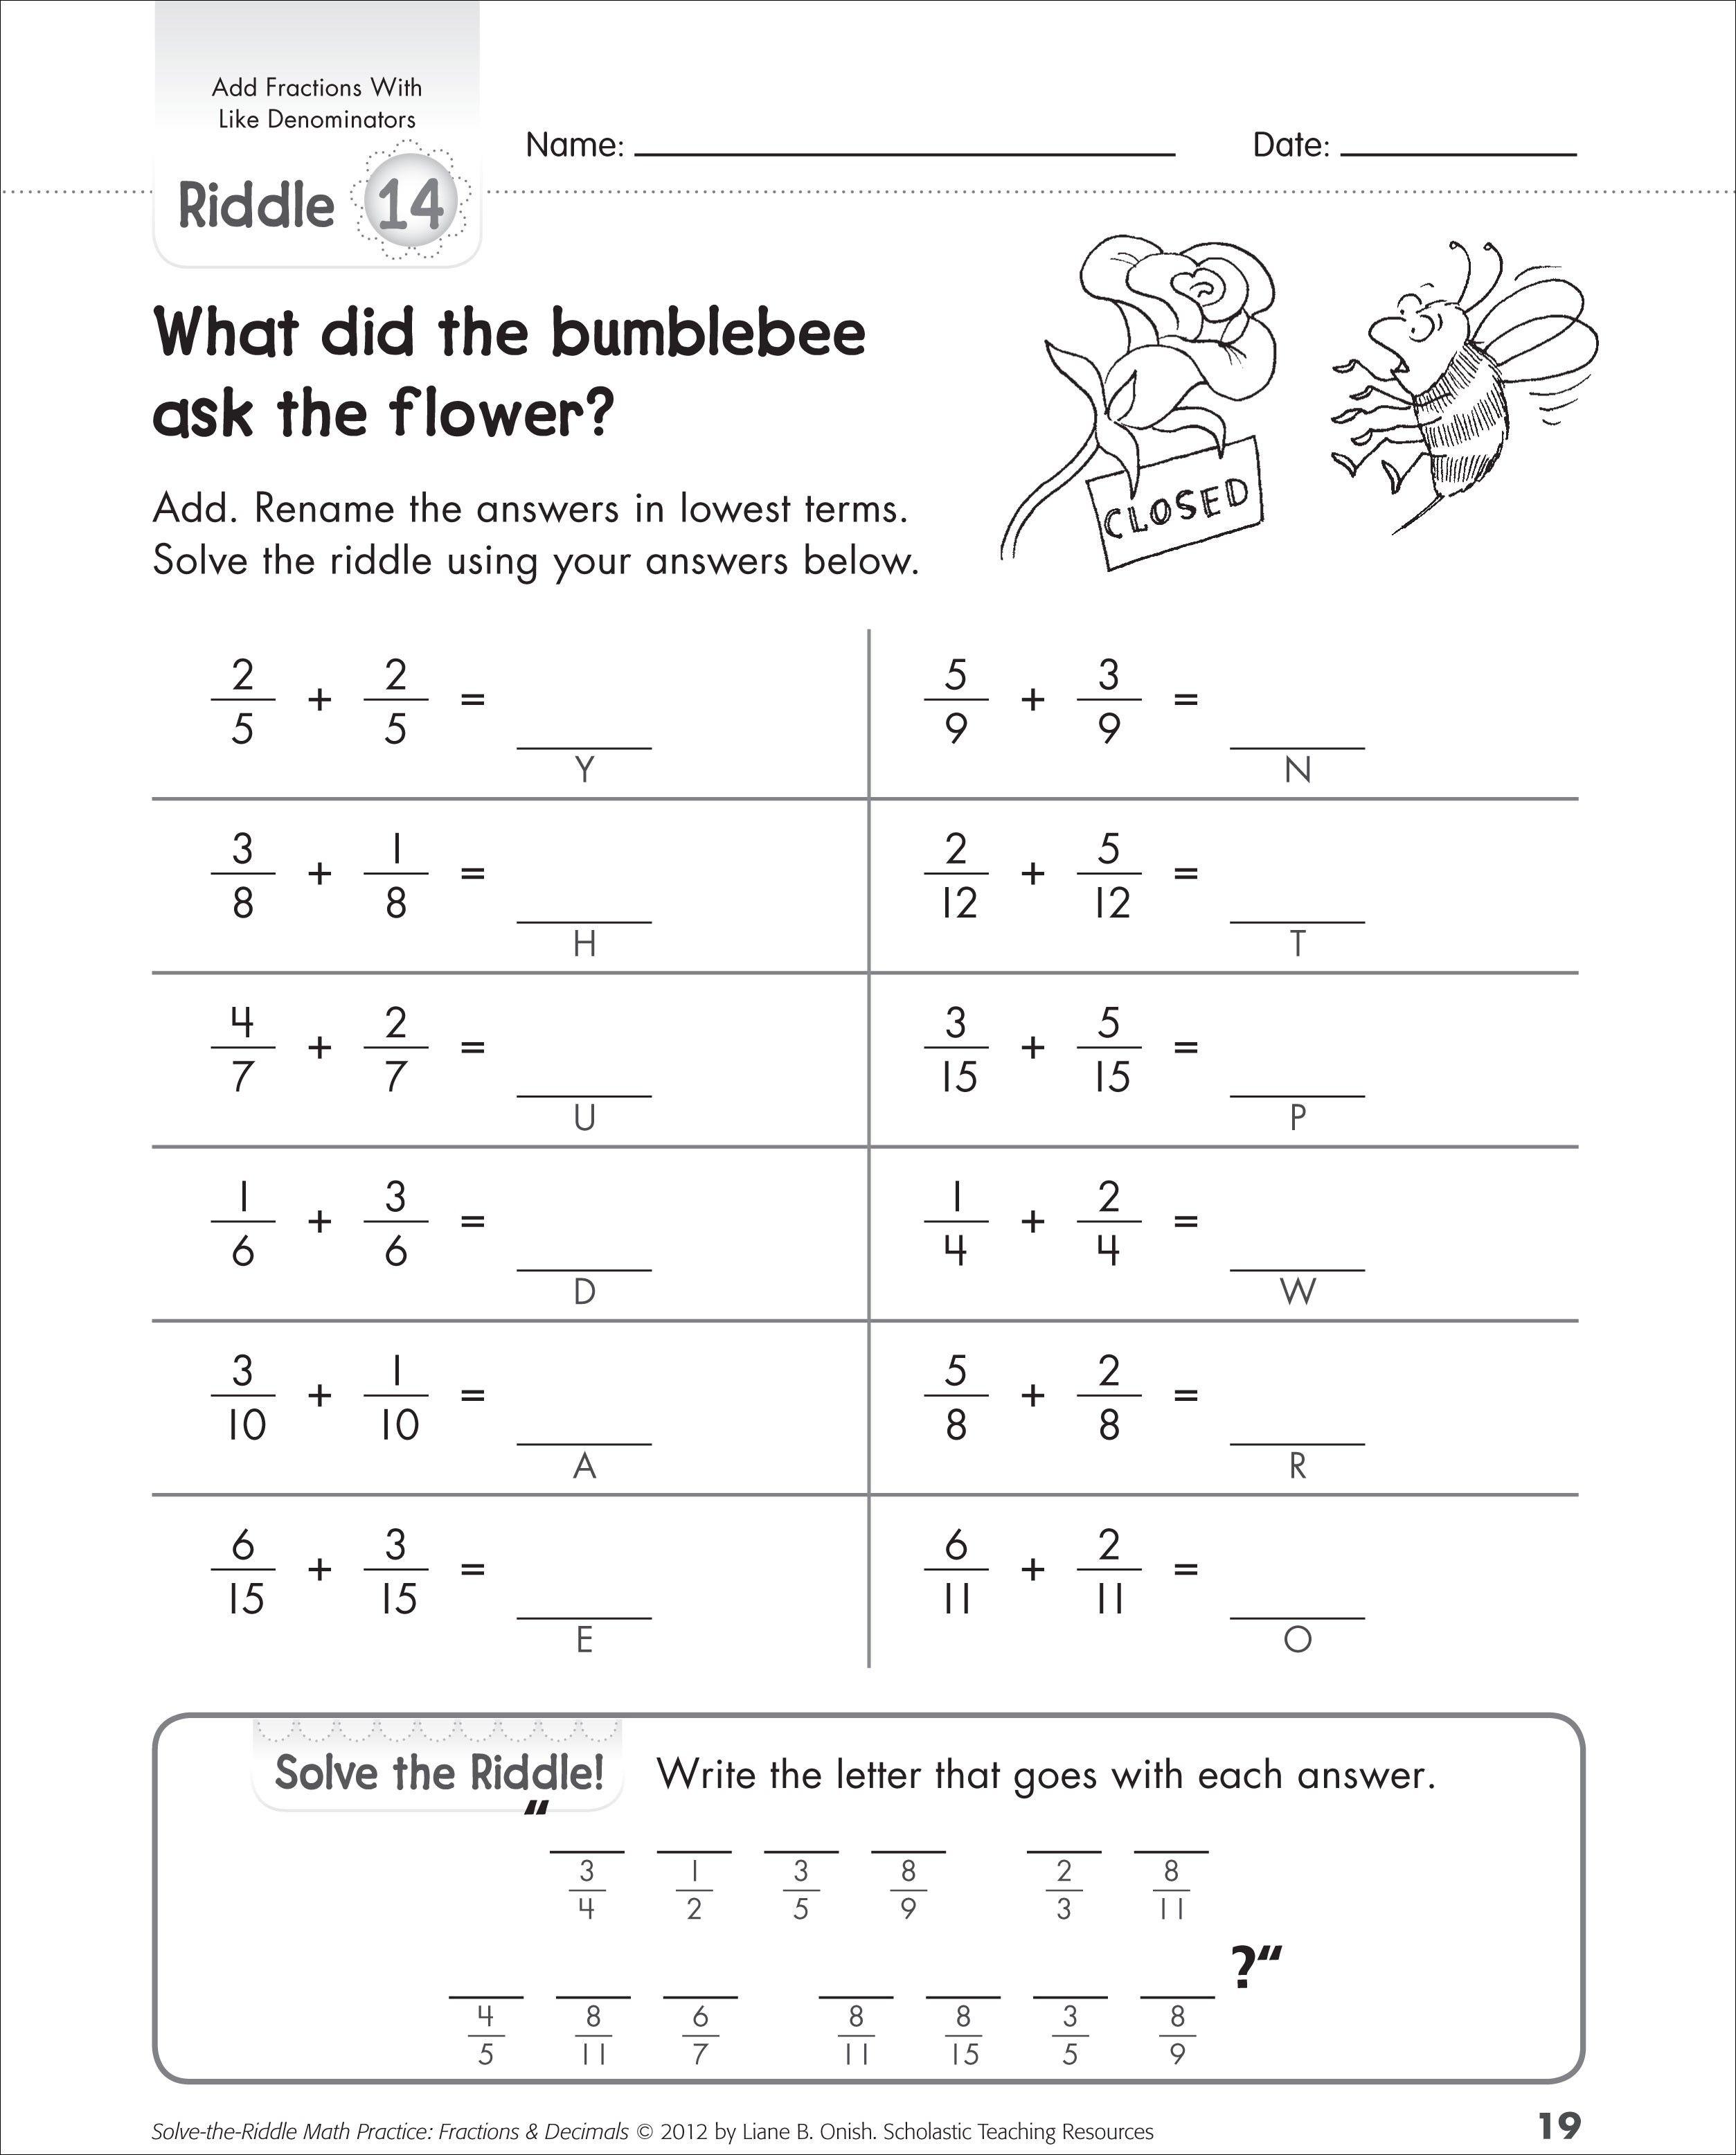 Adding And Subtracting Fractions With Like Denominators Worksheets – Adding and Subtracting Fractions with Same Denominator Worksheets